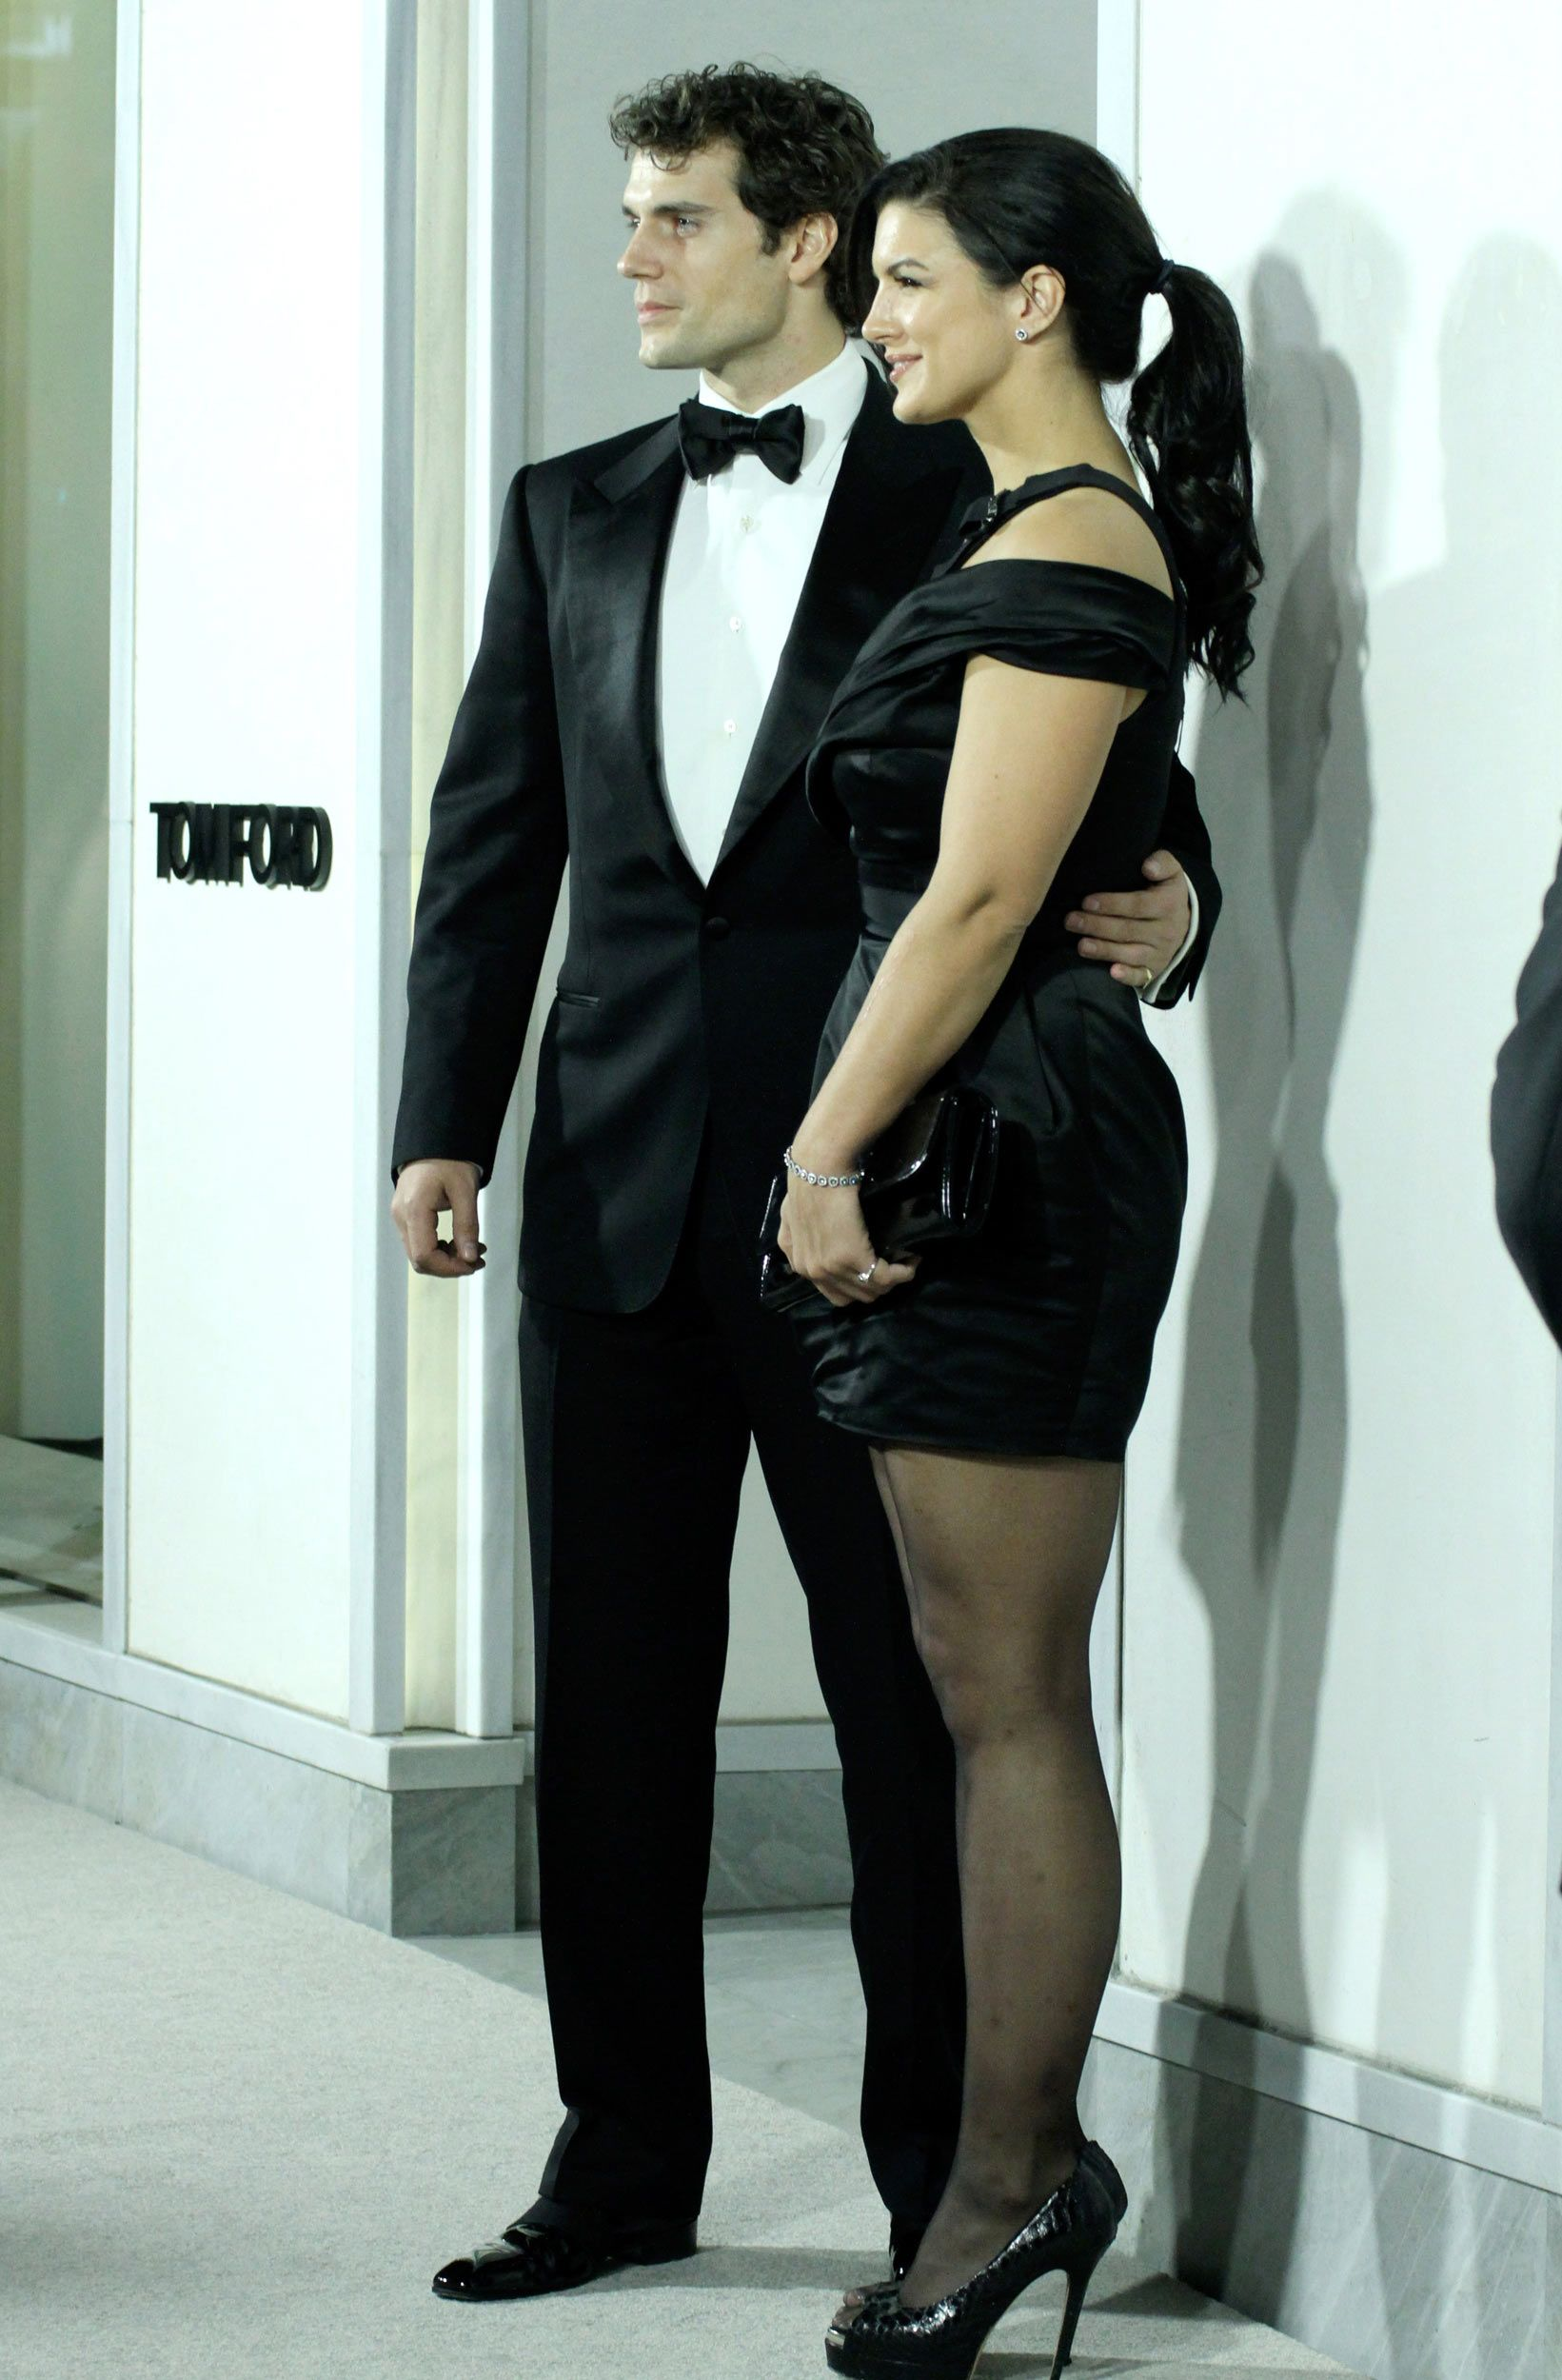 Henry Cavill and Gina Carano at Tom Ford Cocktail Party ...